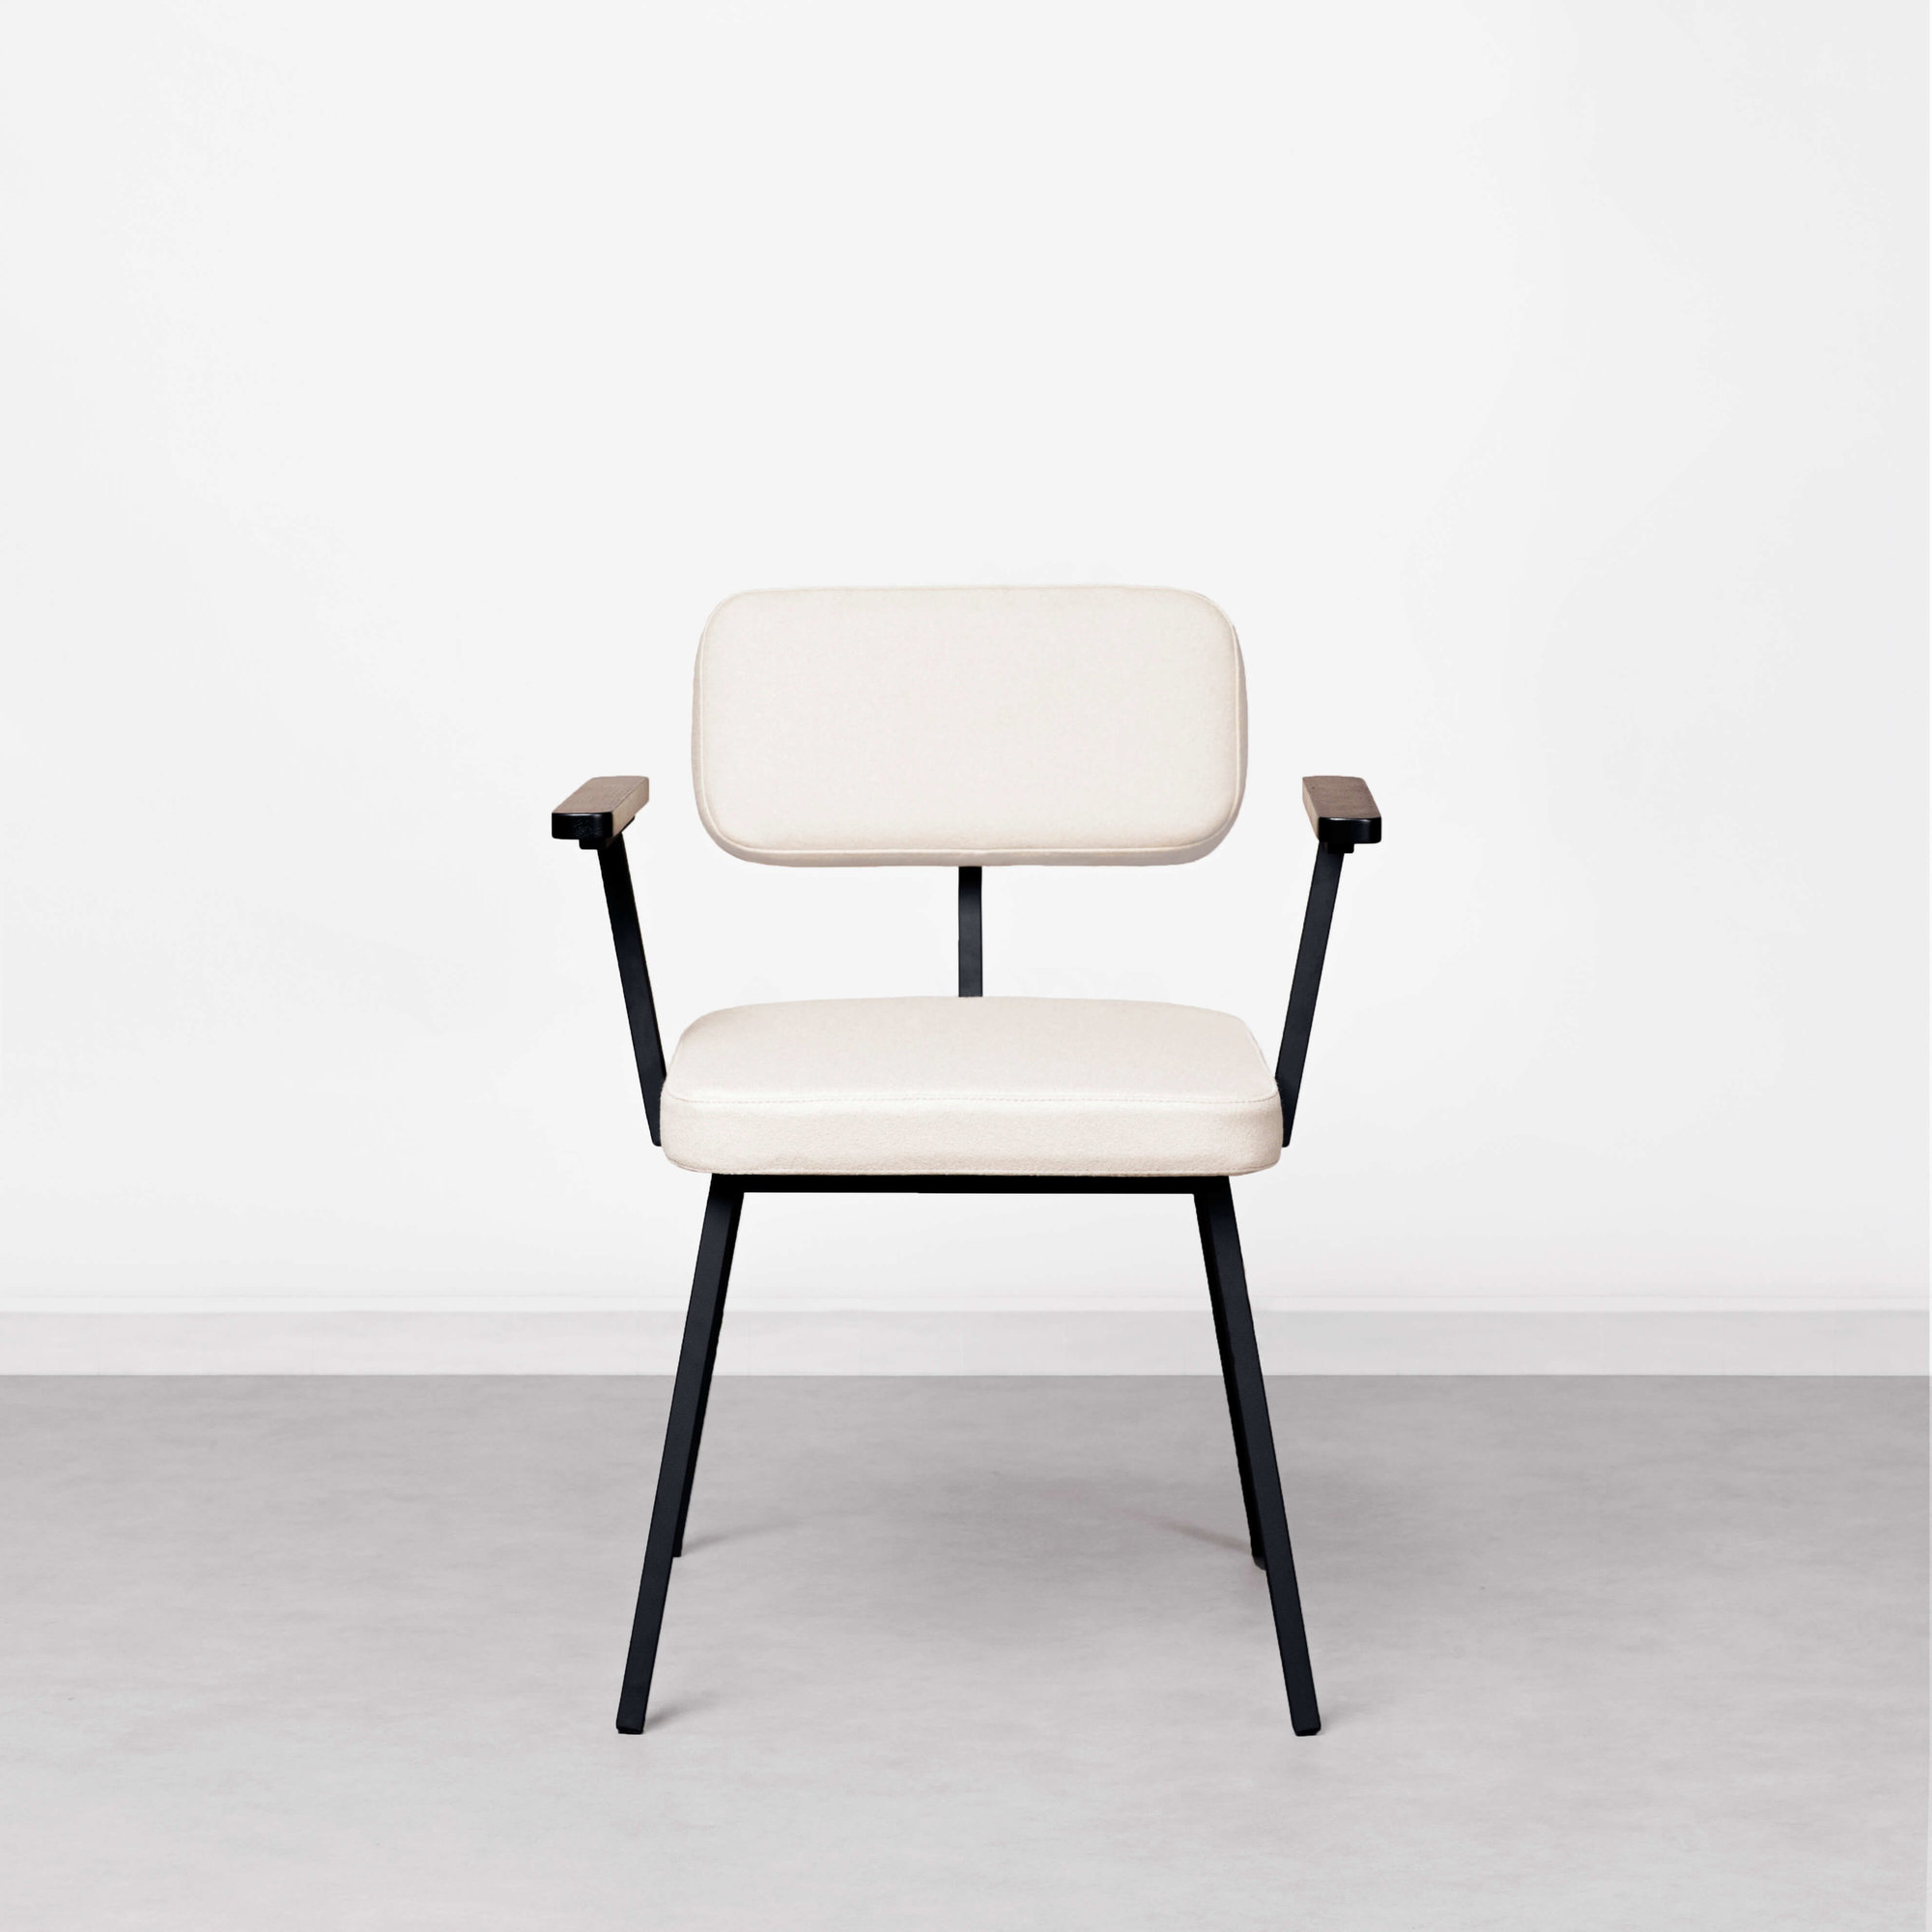 Design eetkamerstoel | Ode Chair without armrest steelcuttrio3 636 | Studio HENK |